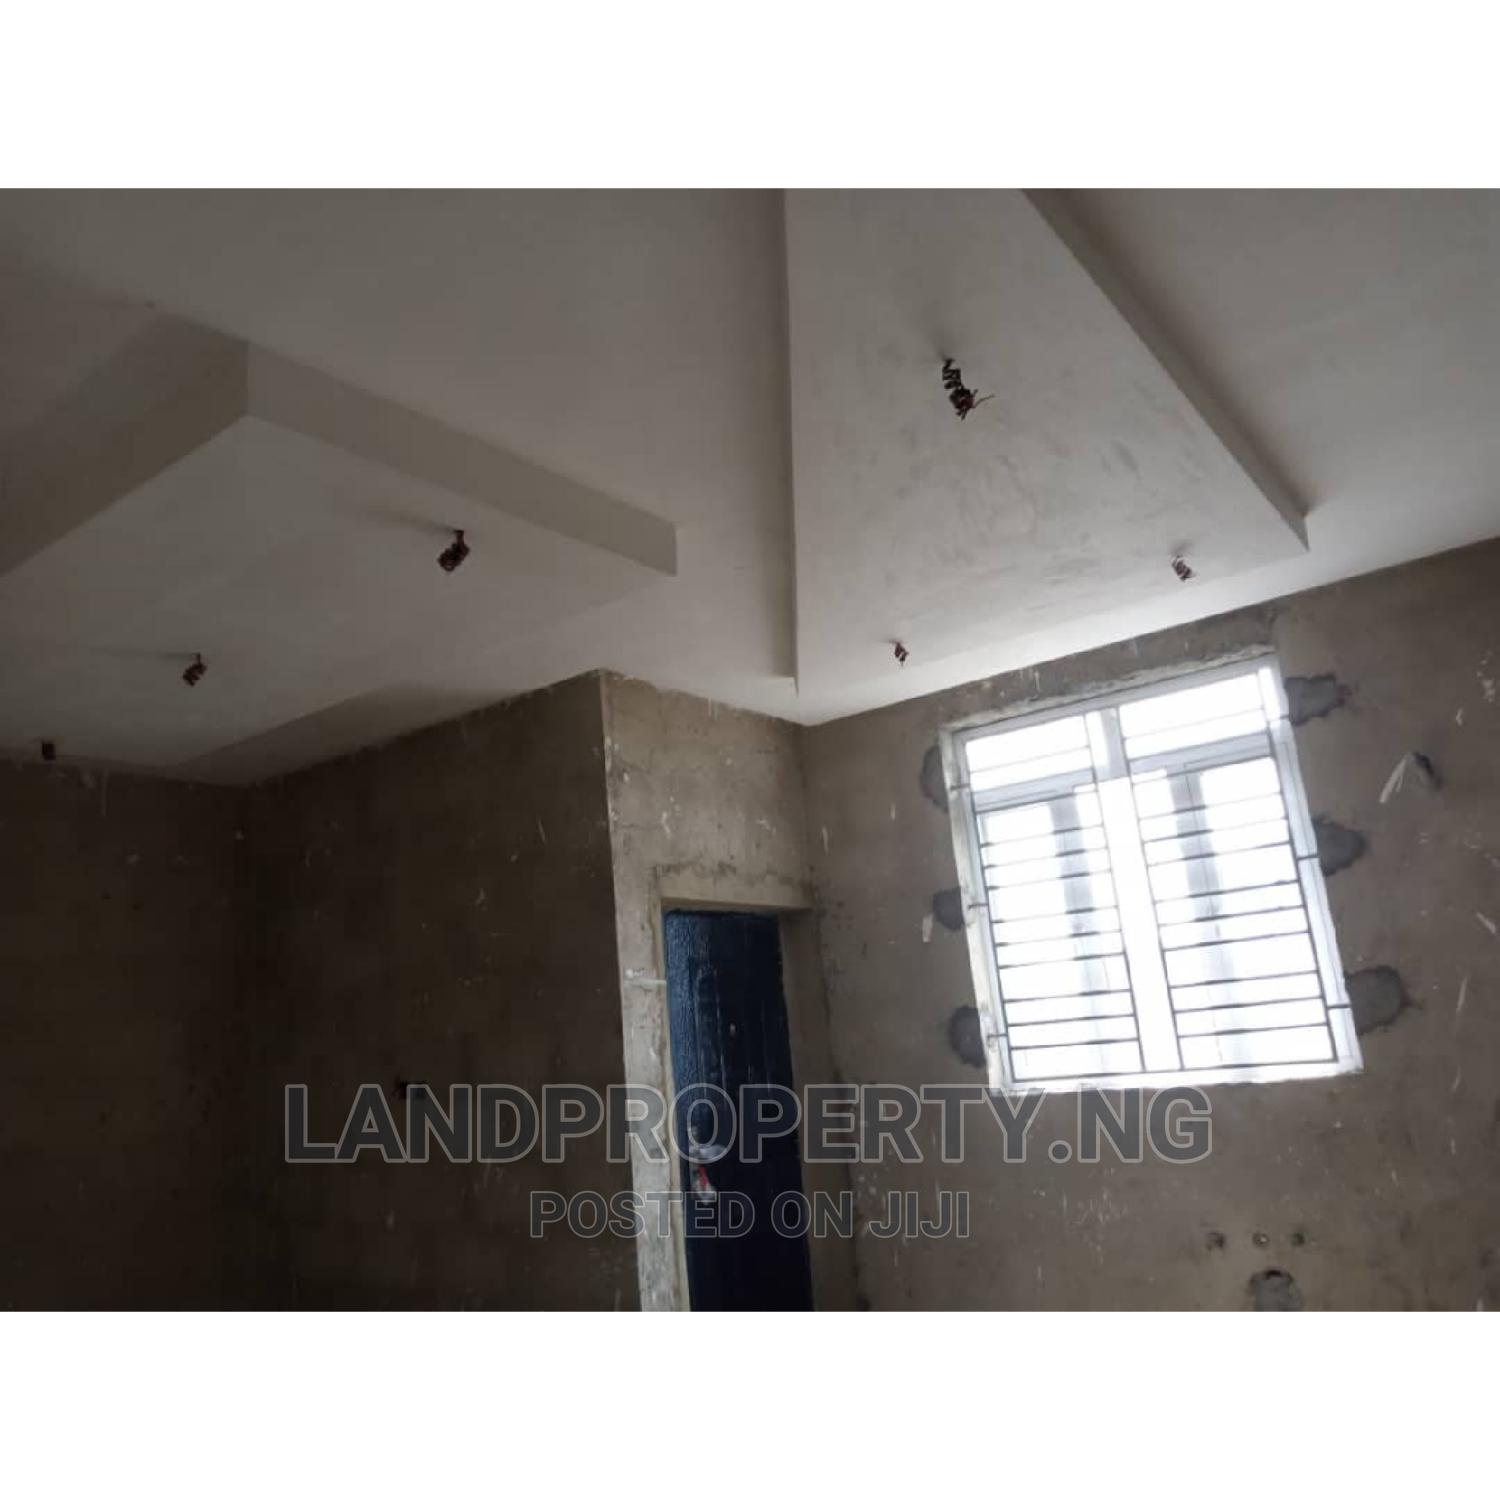 Beautify 4 Bedroom Semi Detached Duplex   Houses & Apartments For Sale for sale in Ajah, Lagos State, Nigeria